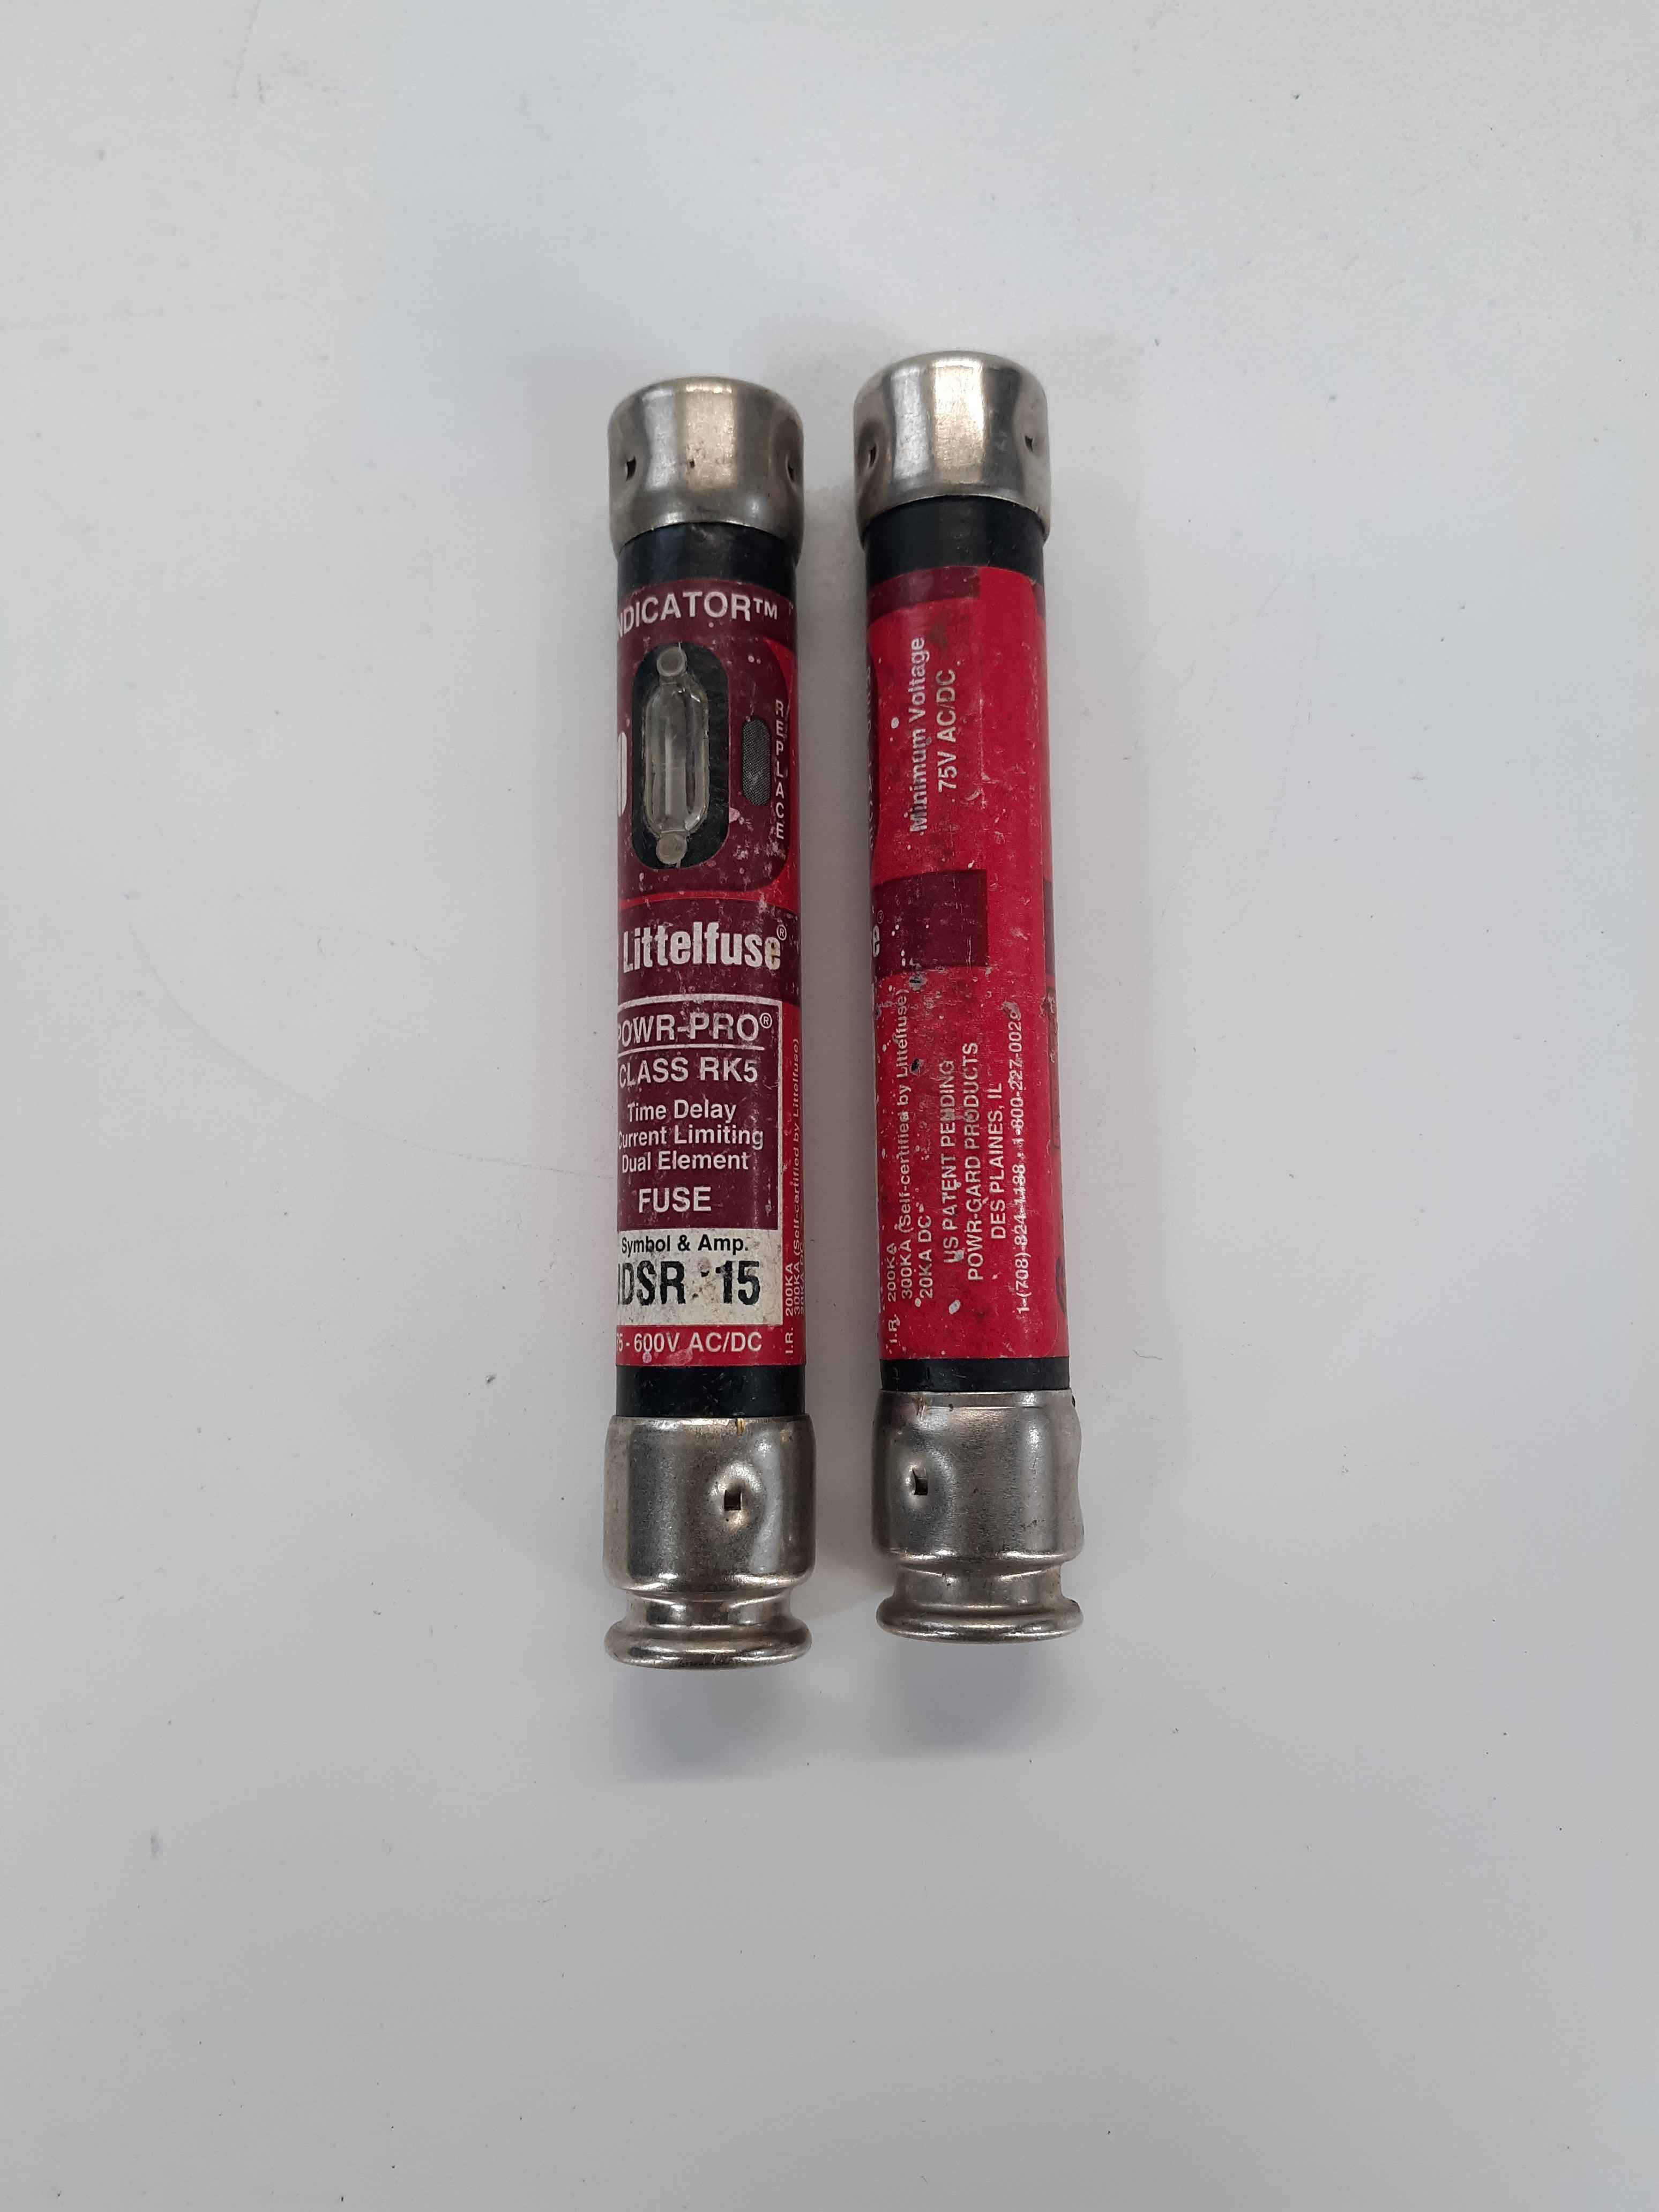 Littlefuse IDSR 15 75-600v ac/dc Powr-Pro Class RK5 (Lot of 2)